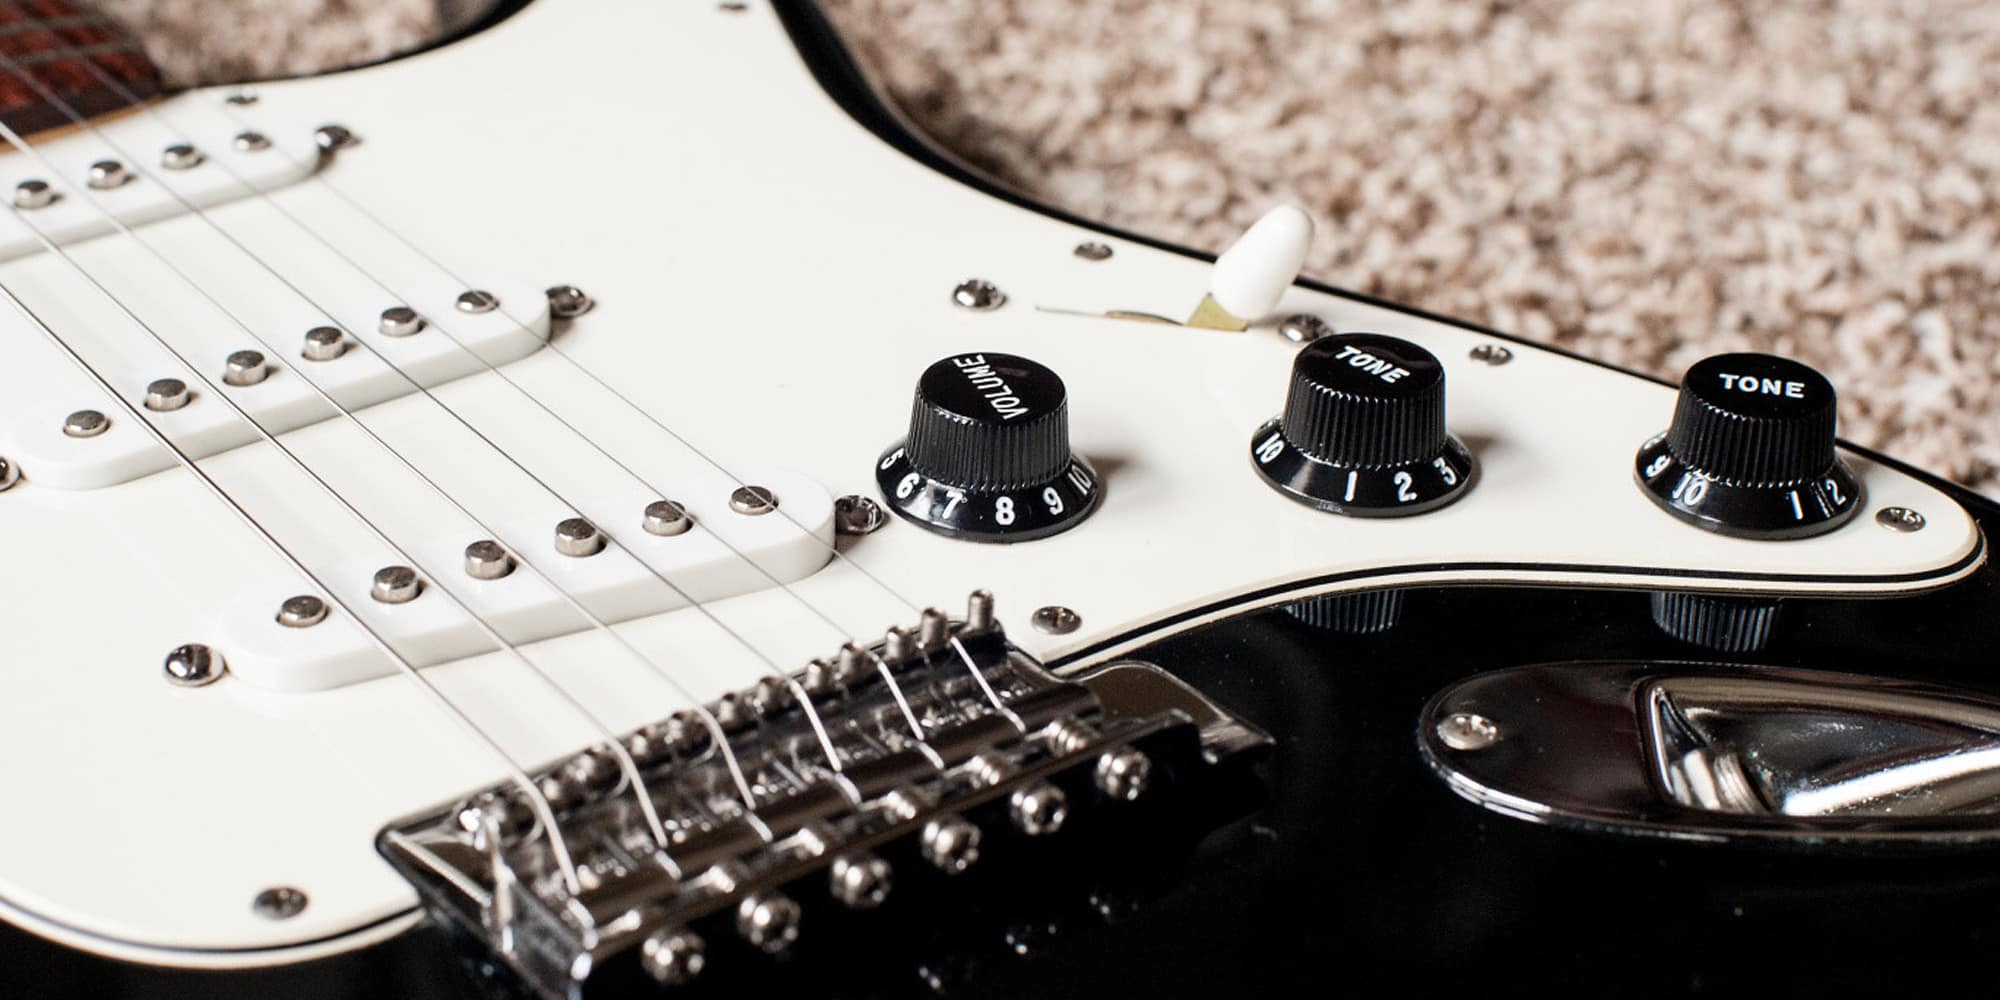 Volume And Tone Knobs Your Most Underrated Effects Reverb News Picture Of How To Make A Circuit Board Guitar Pick In An Interview Jimmy Vivino The Basic Cable Band Described Joe Walsh Visiting Him On Set Conan Ran His Hand Across Amps Controls